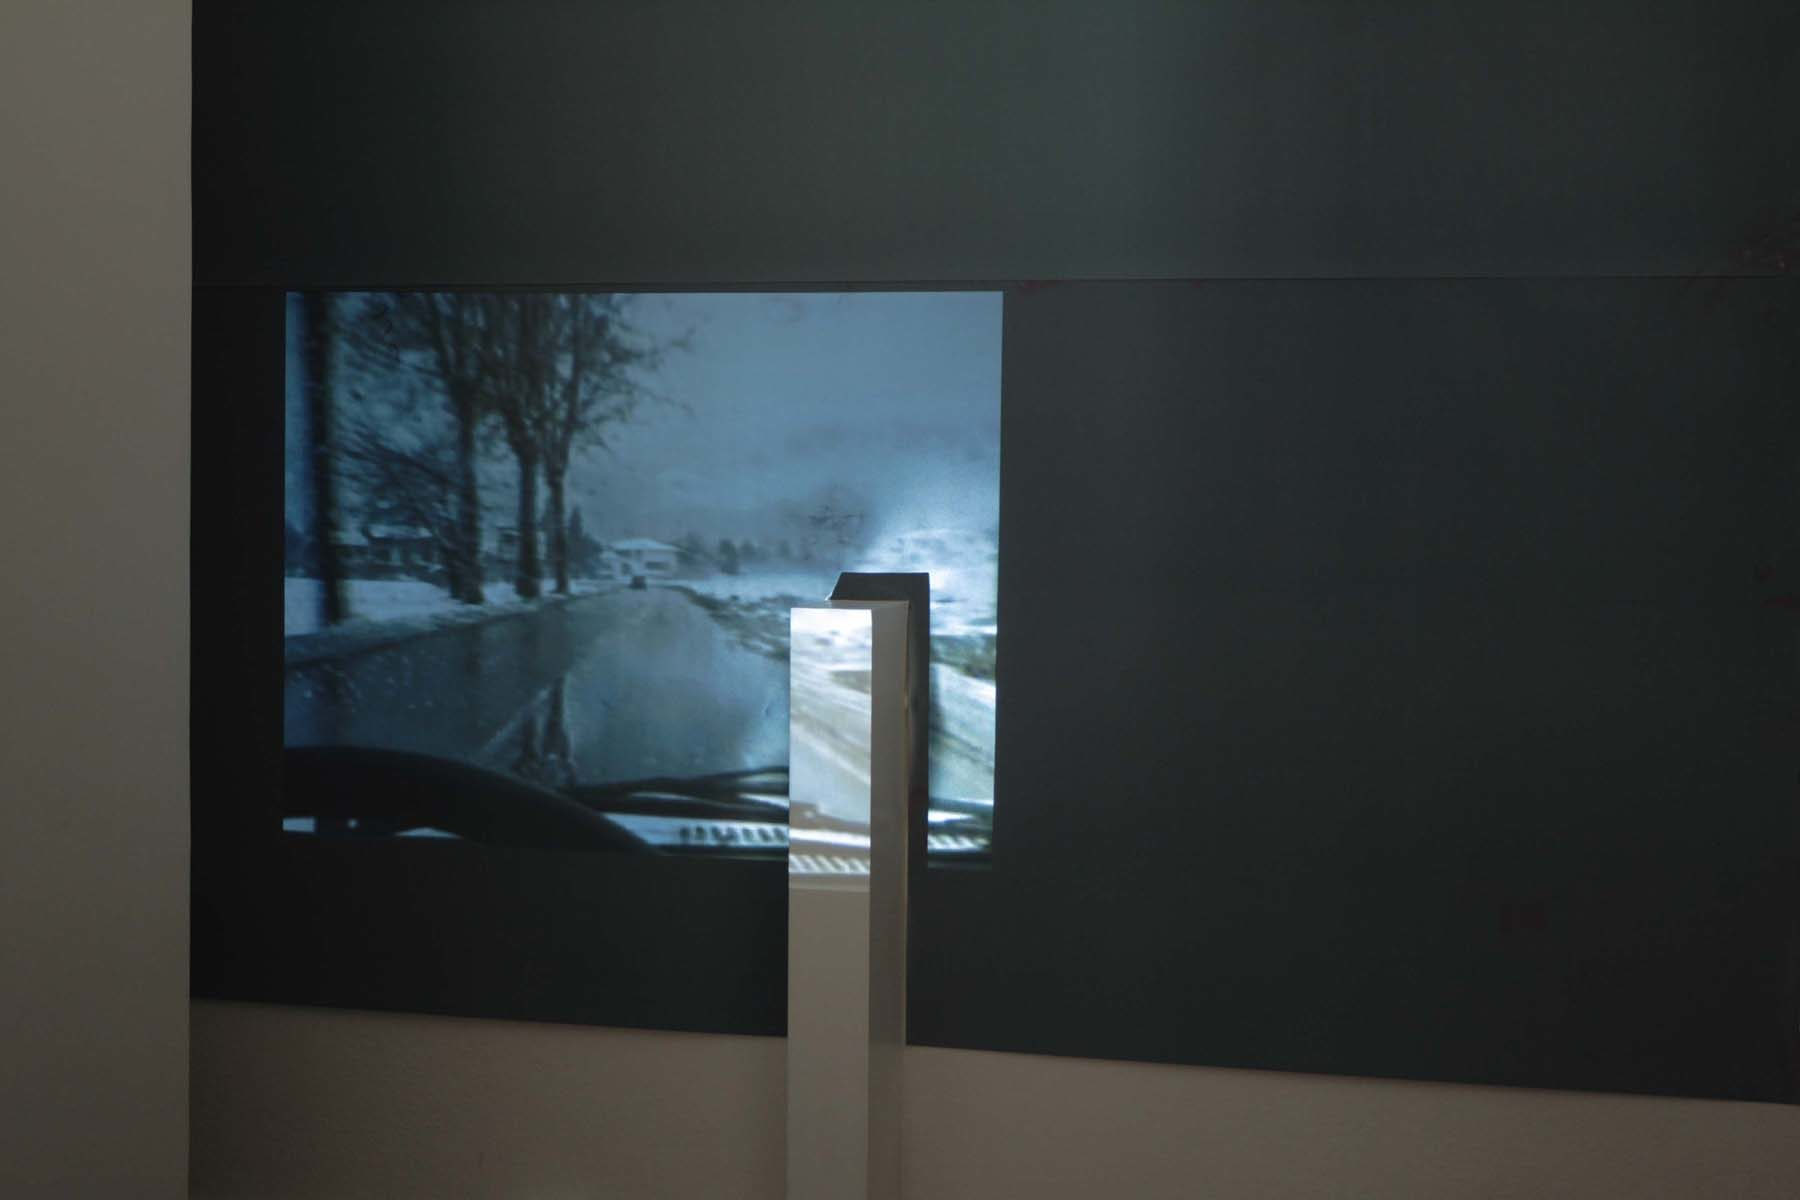 Fabio Sandri, Stanza, 2008, photosensitive paper, video projection, enviromental dimensions